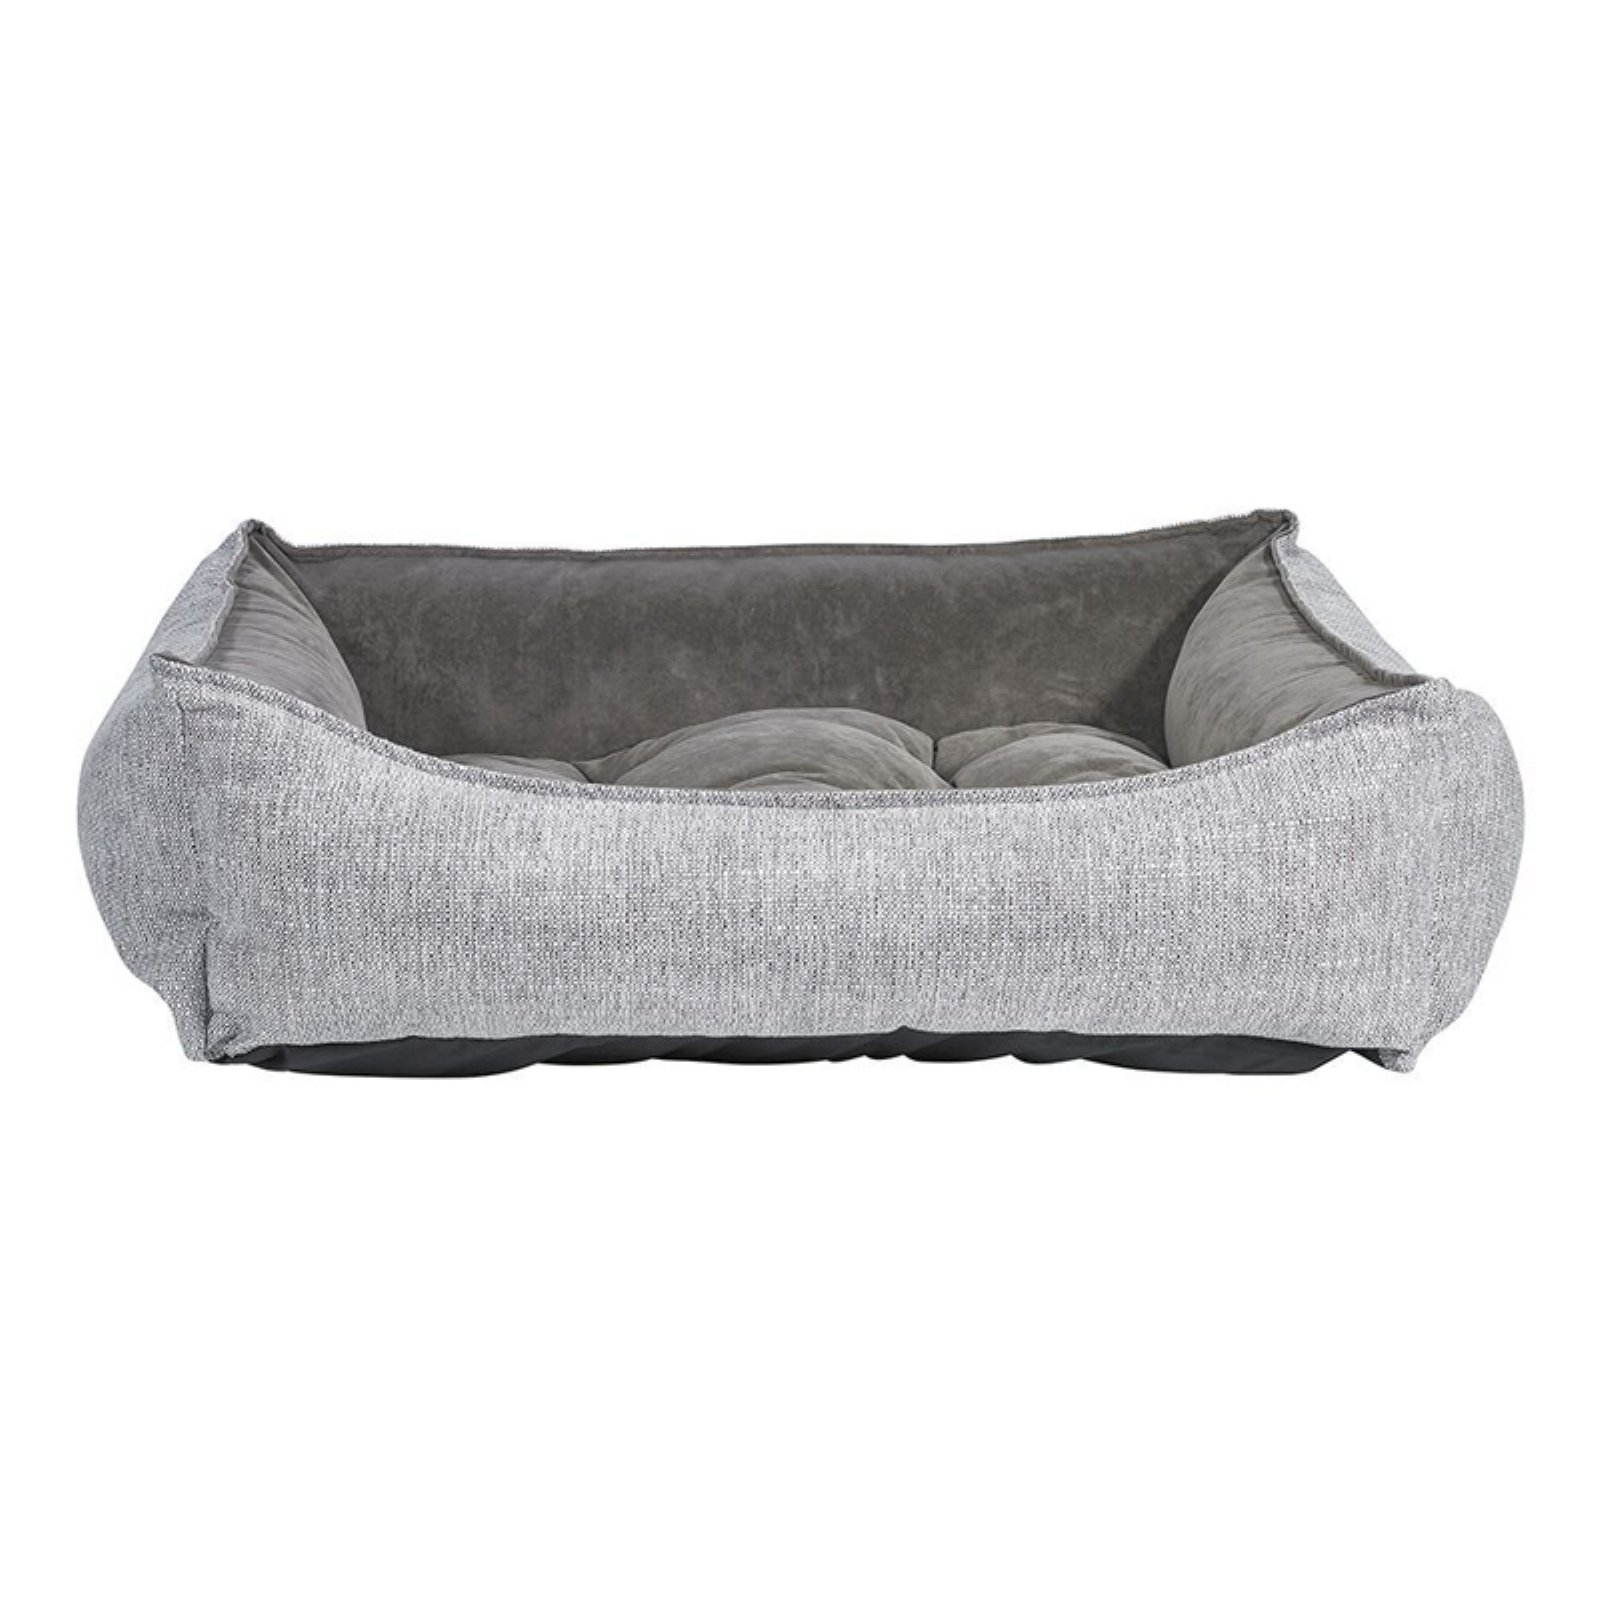 Bowser's Scoop Pet Bed, Allumina/Dusk, Small ( 29L x 23W x 8.5H in)